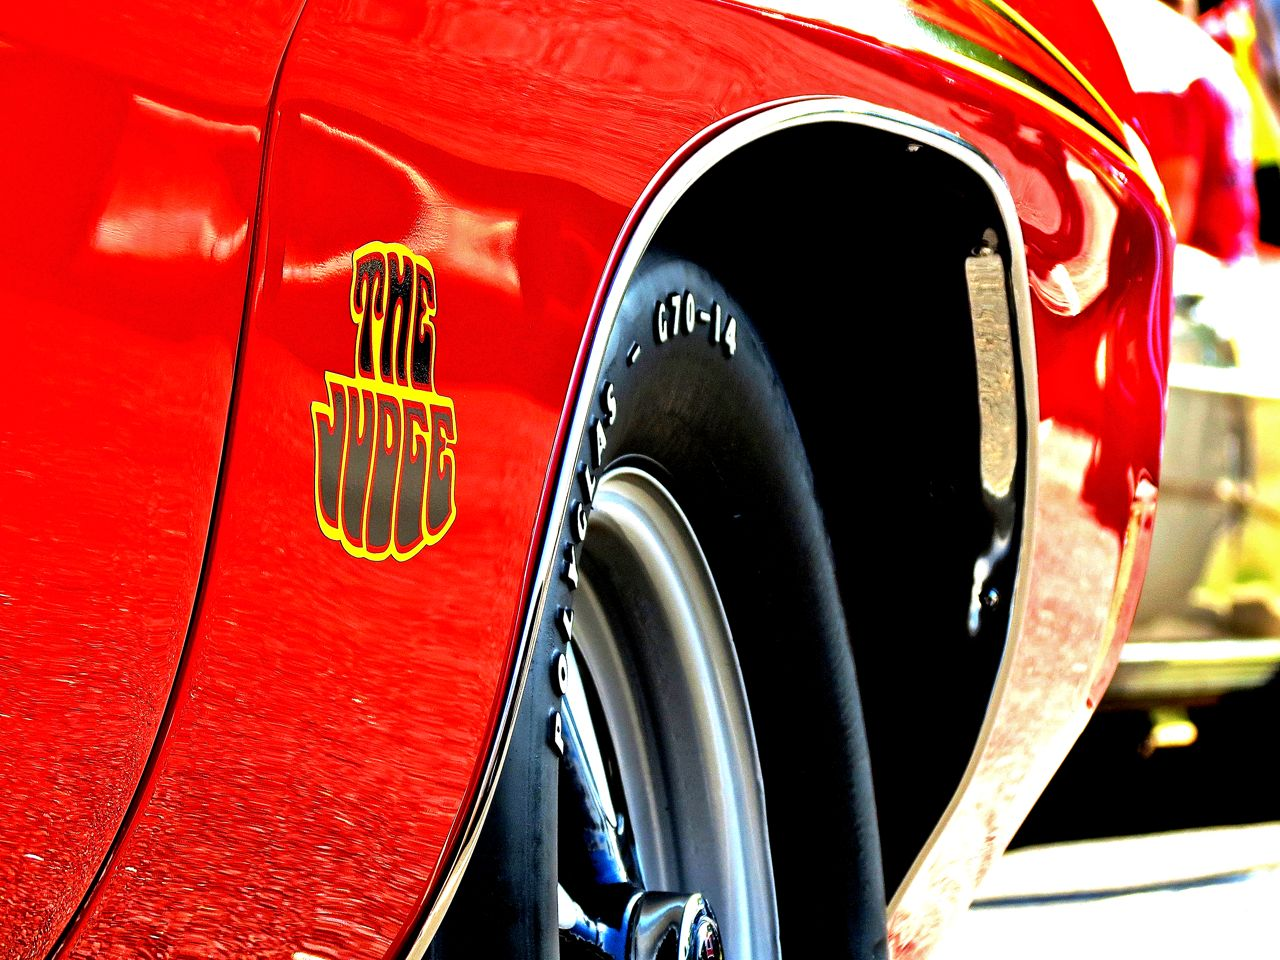 New Hope Pontiac GTO Judge